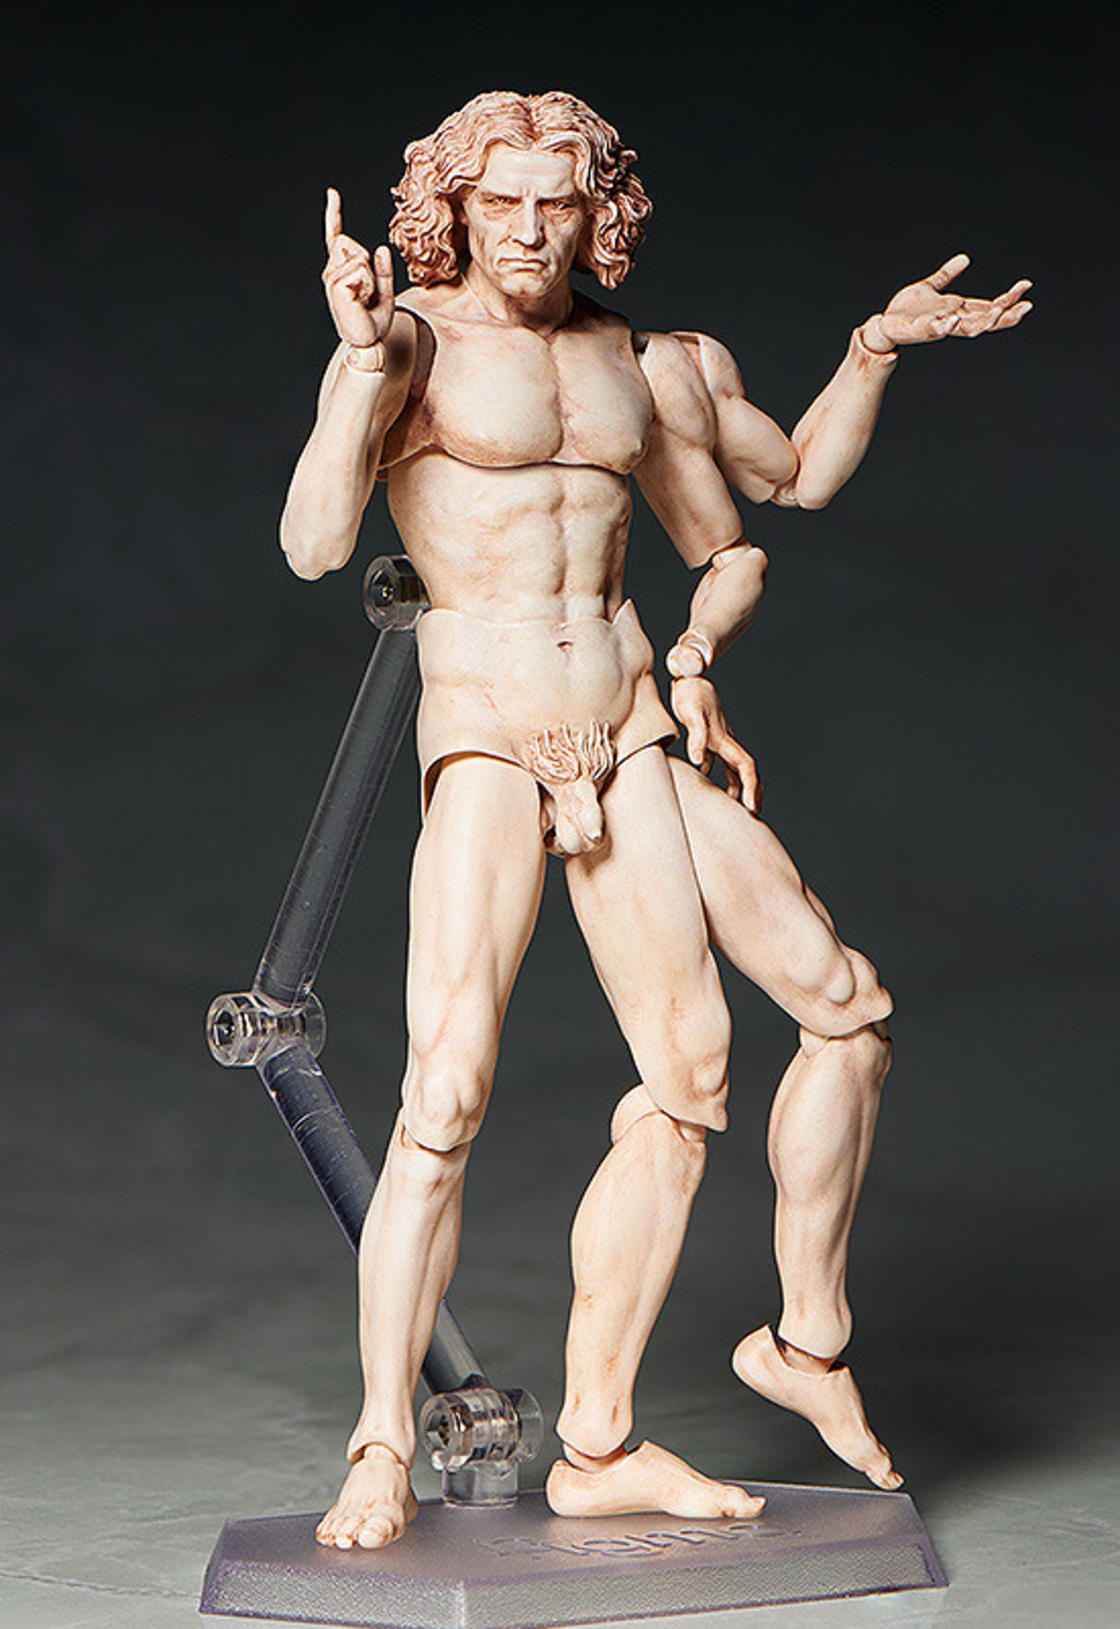 Vitruvian-Man-Action-Figure-8.jpg